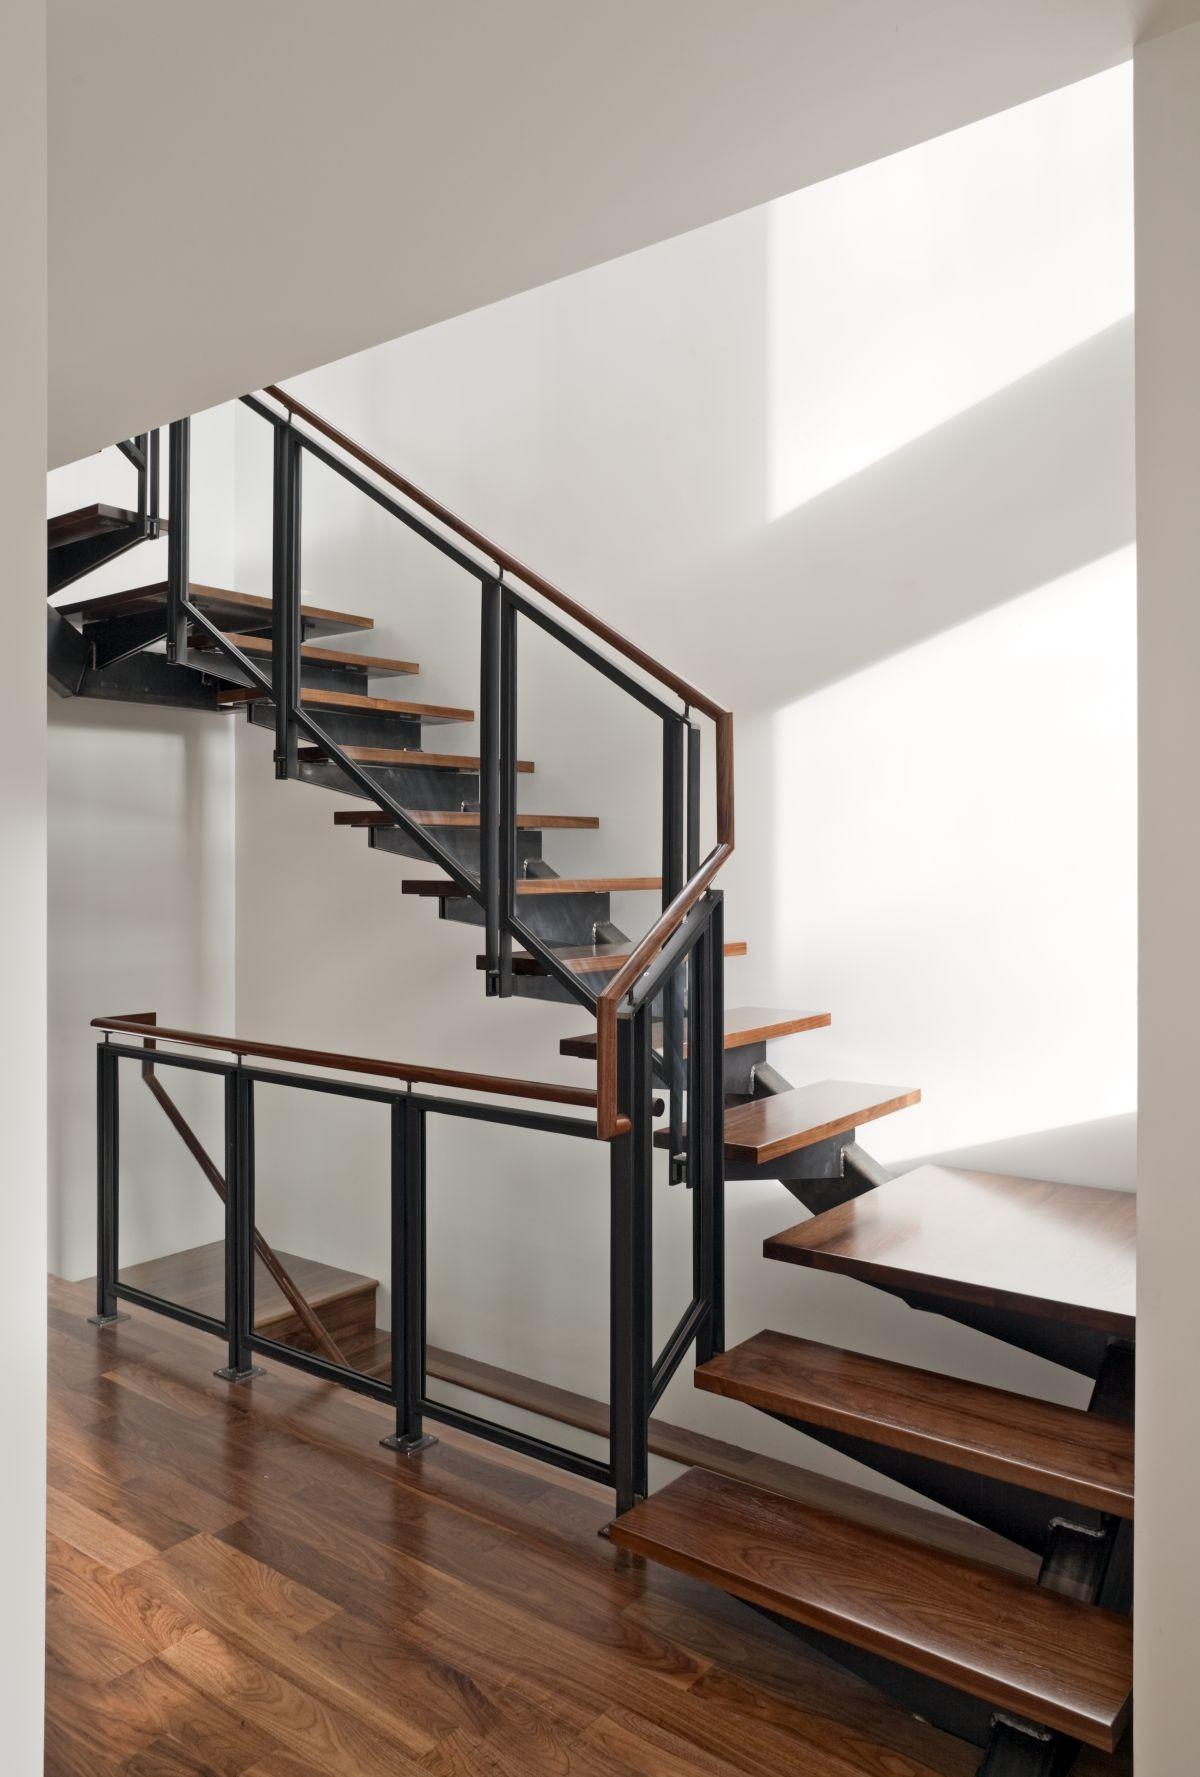 Regal Glass Banister Stairs Black Iron Frame